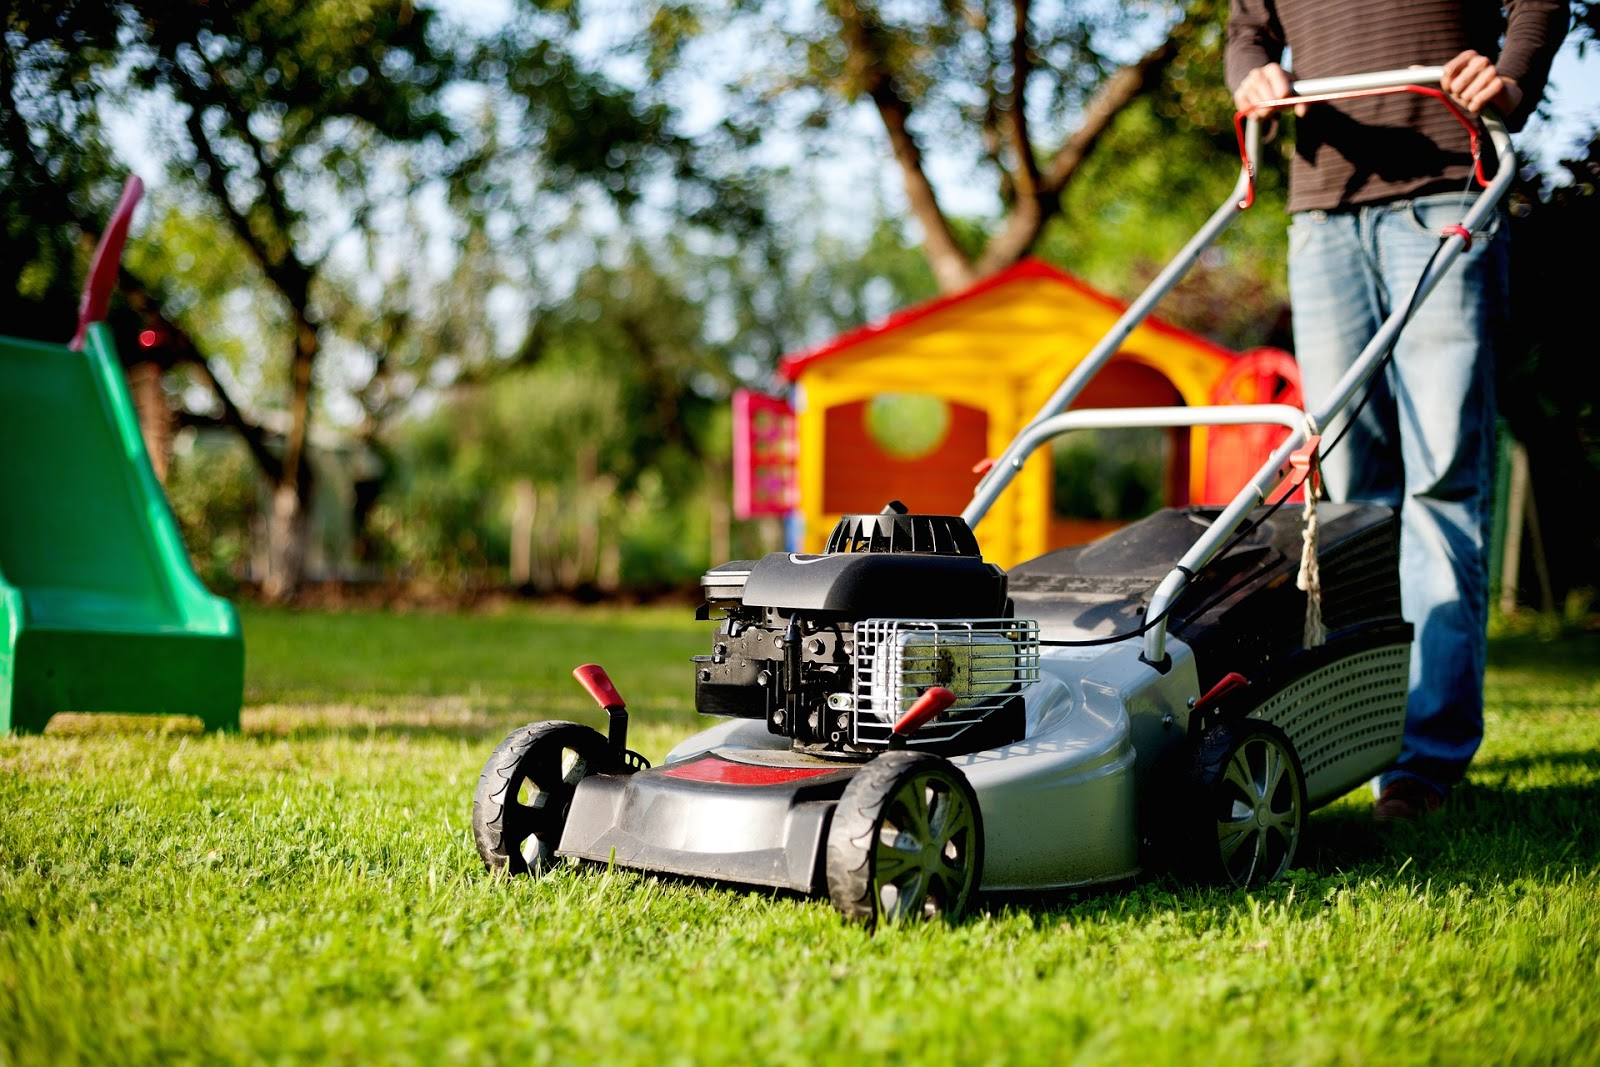 Picture of a lawn mower.